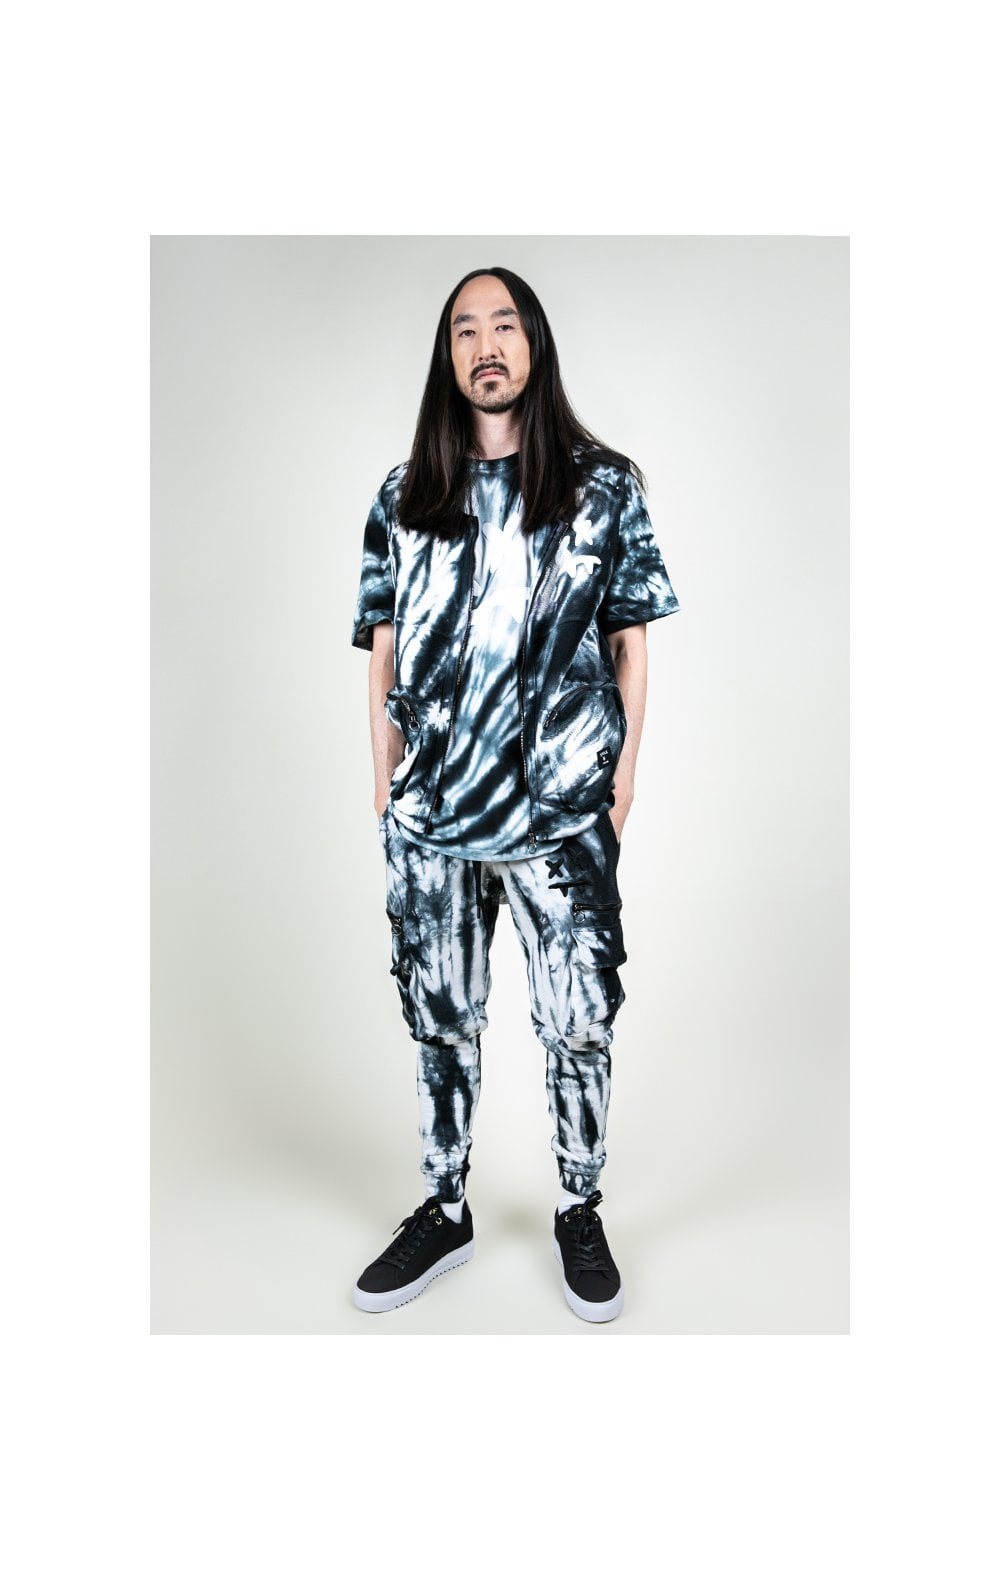 Load image into Gallery viewer, SikSilk X Steve Aoki Utility Vest - Black & White Ink Tie Dye (5)